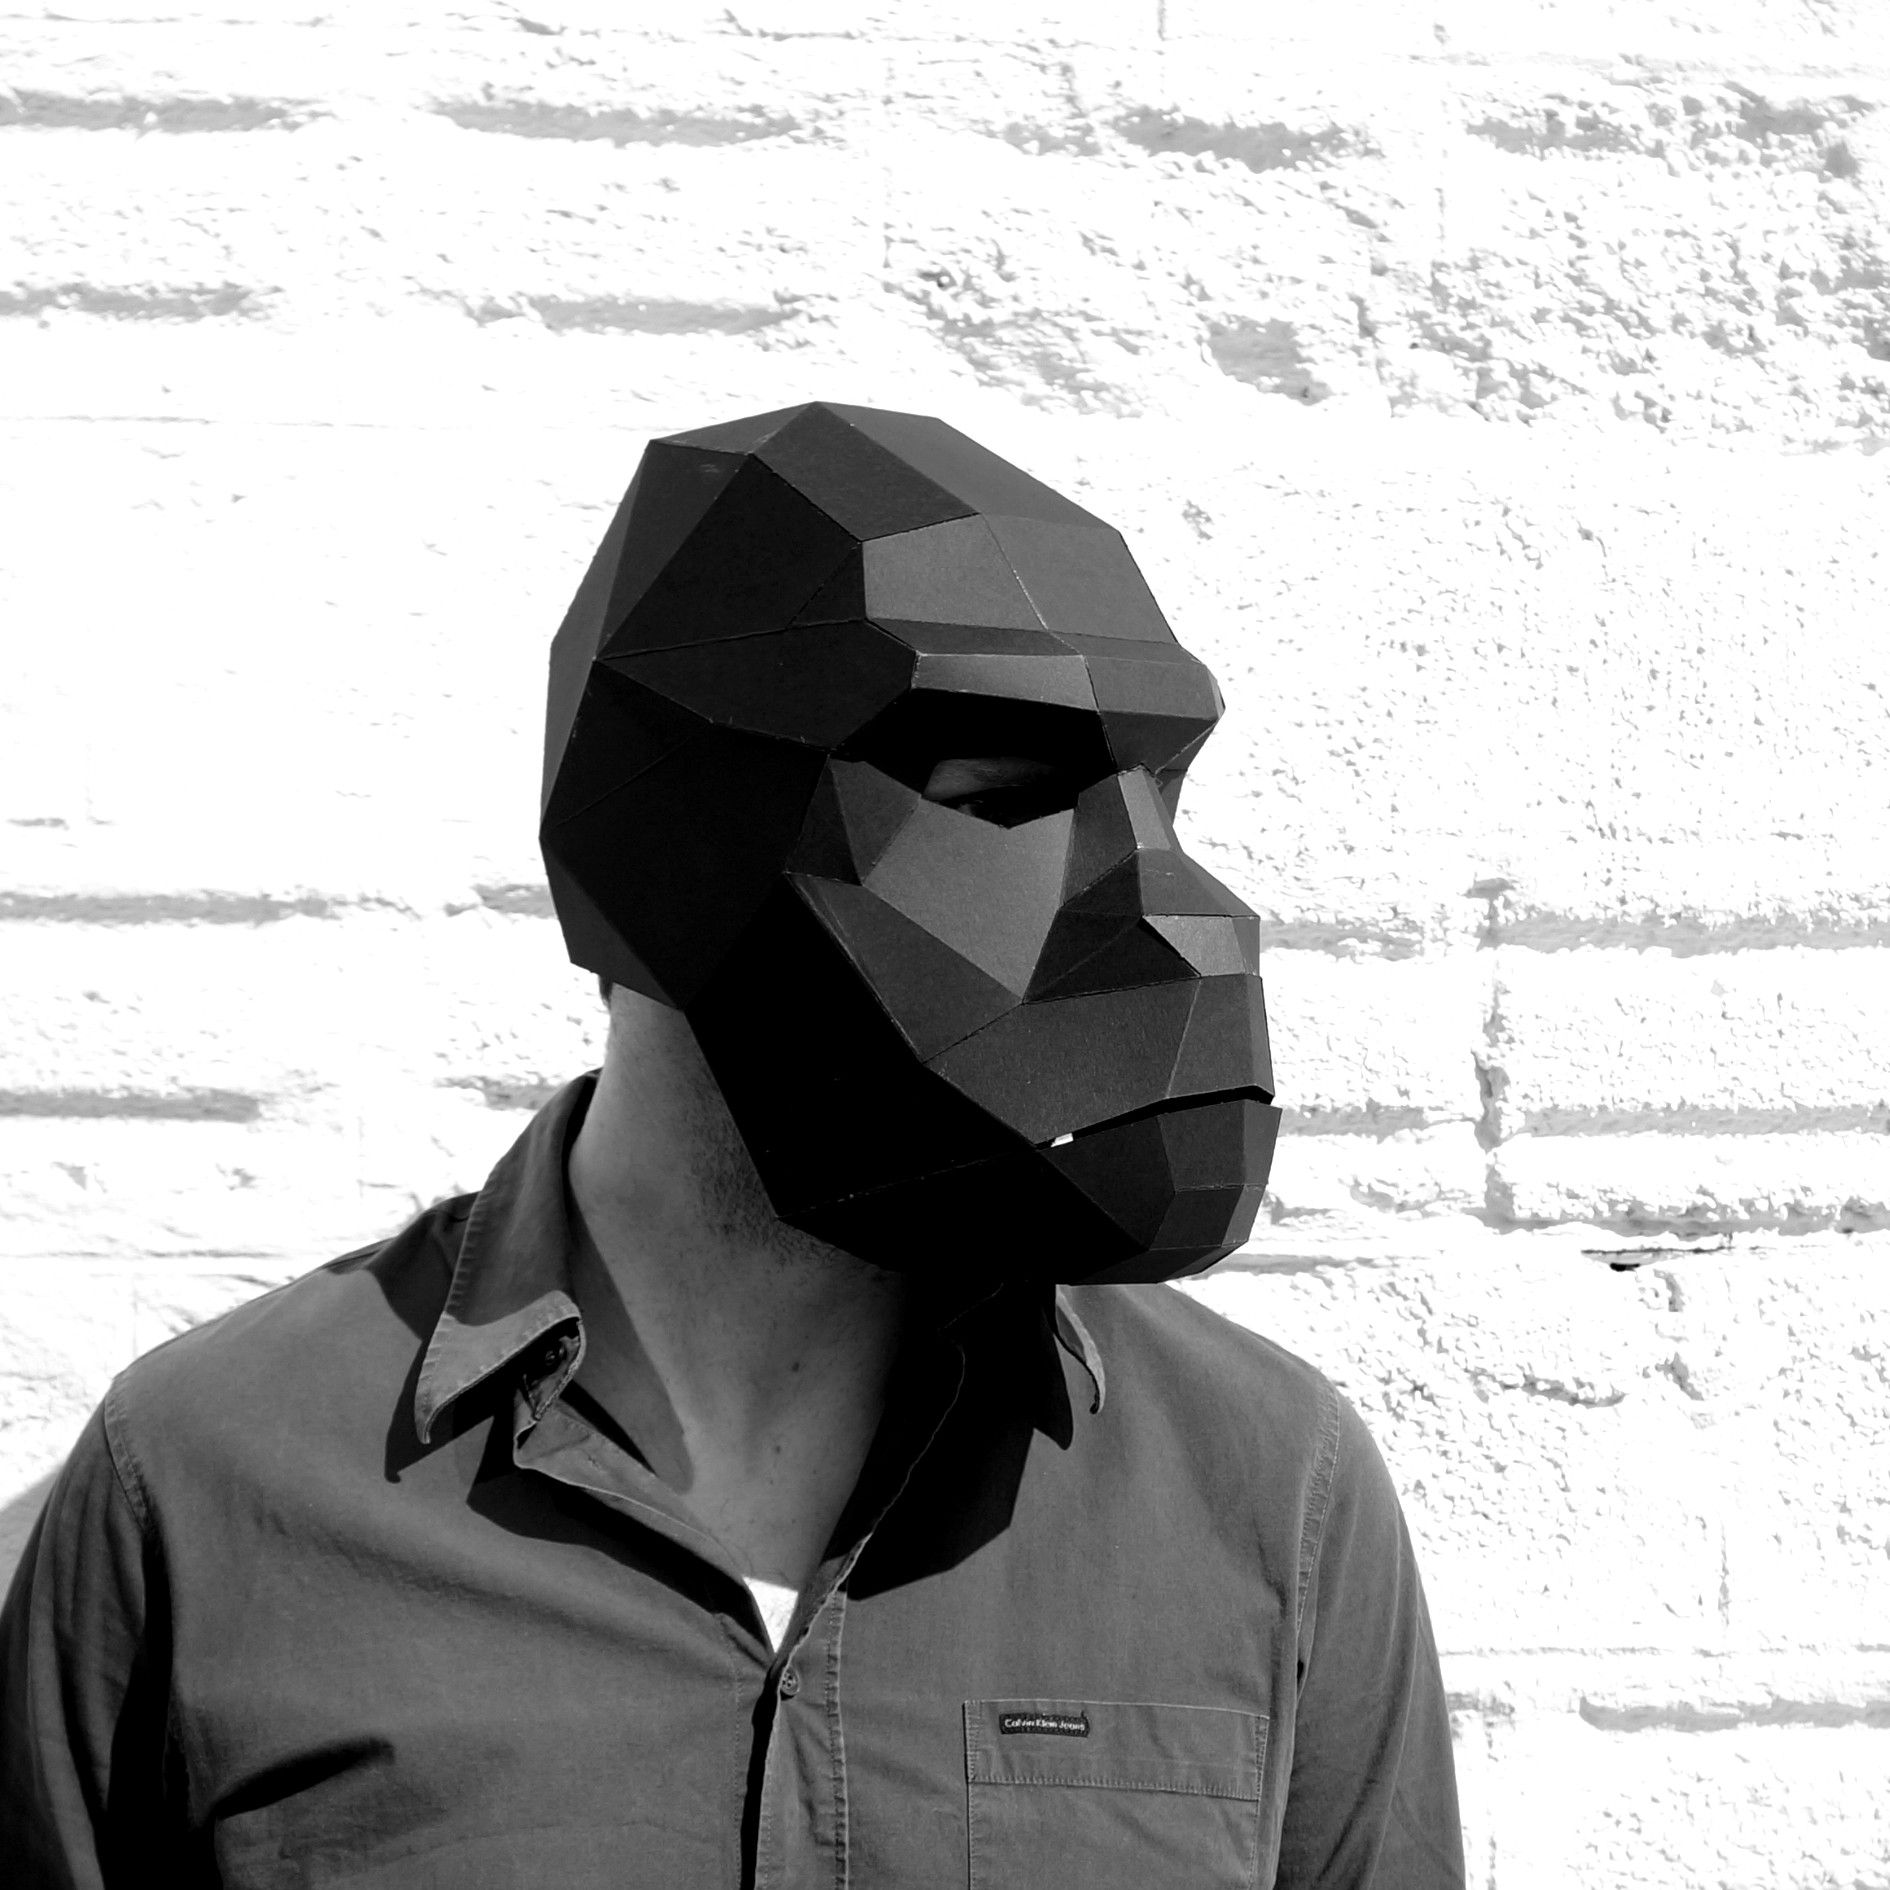 Gorilla Mask - Wintercroft - 1 | I want it! | Pinterest ...